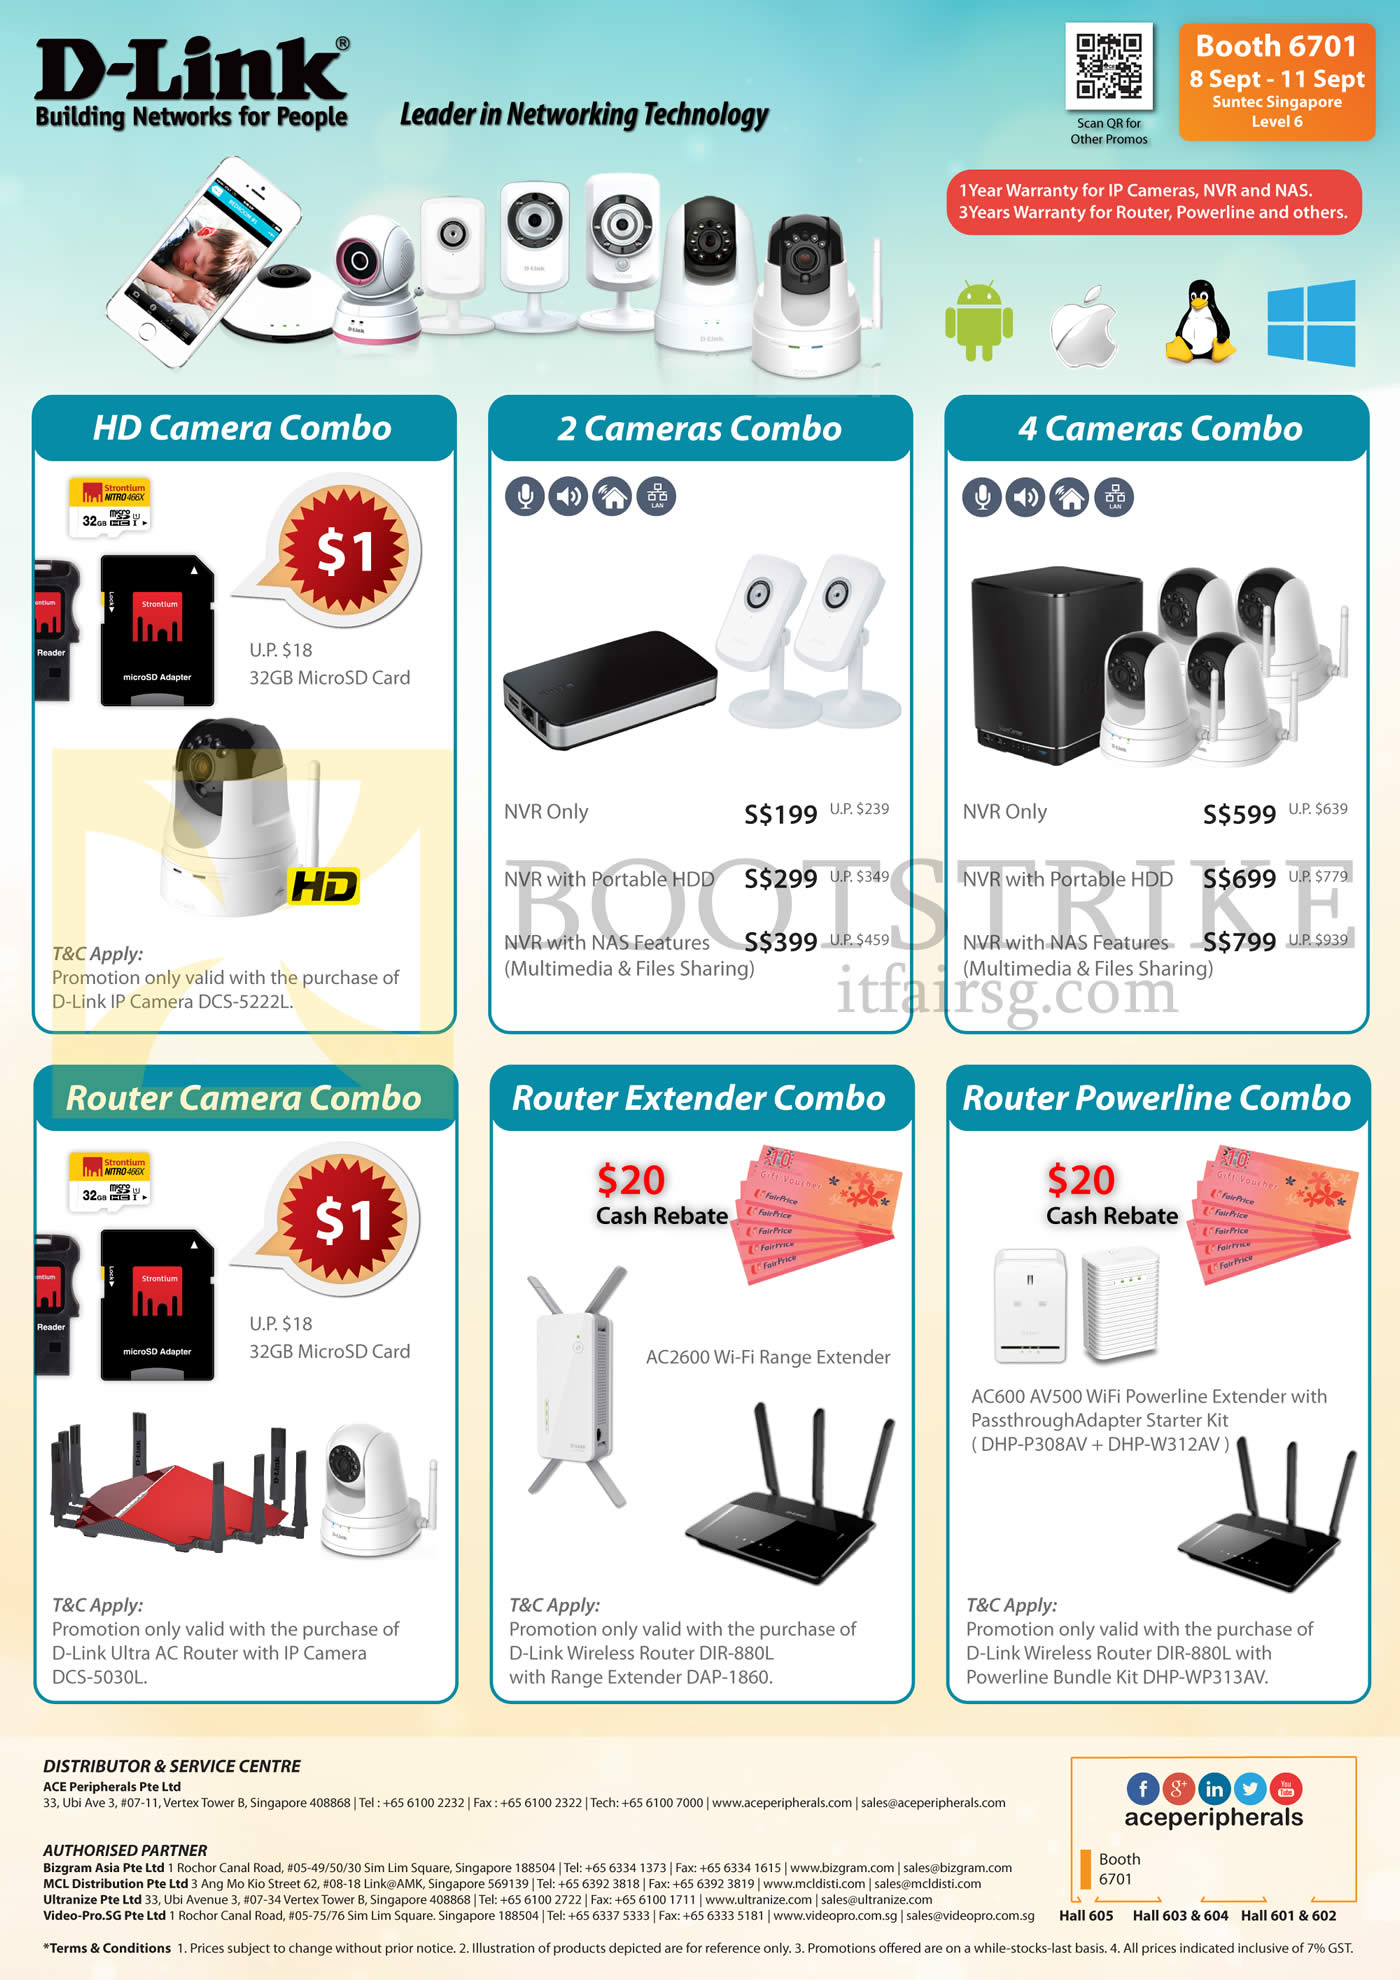 COMEX 2016 price list image brochure of Ace Peripherals D-Link Camera Combos HD Camera, 2 Cameras, Router, Router Extender, Router Powerline Combos